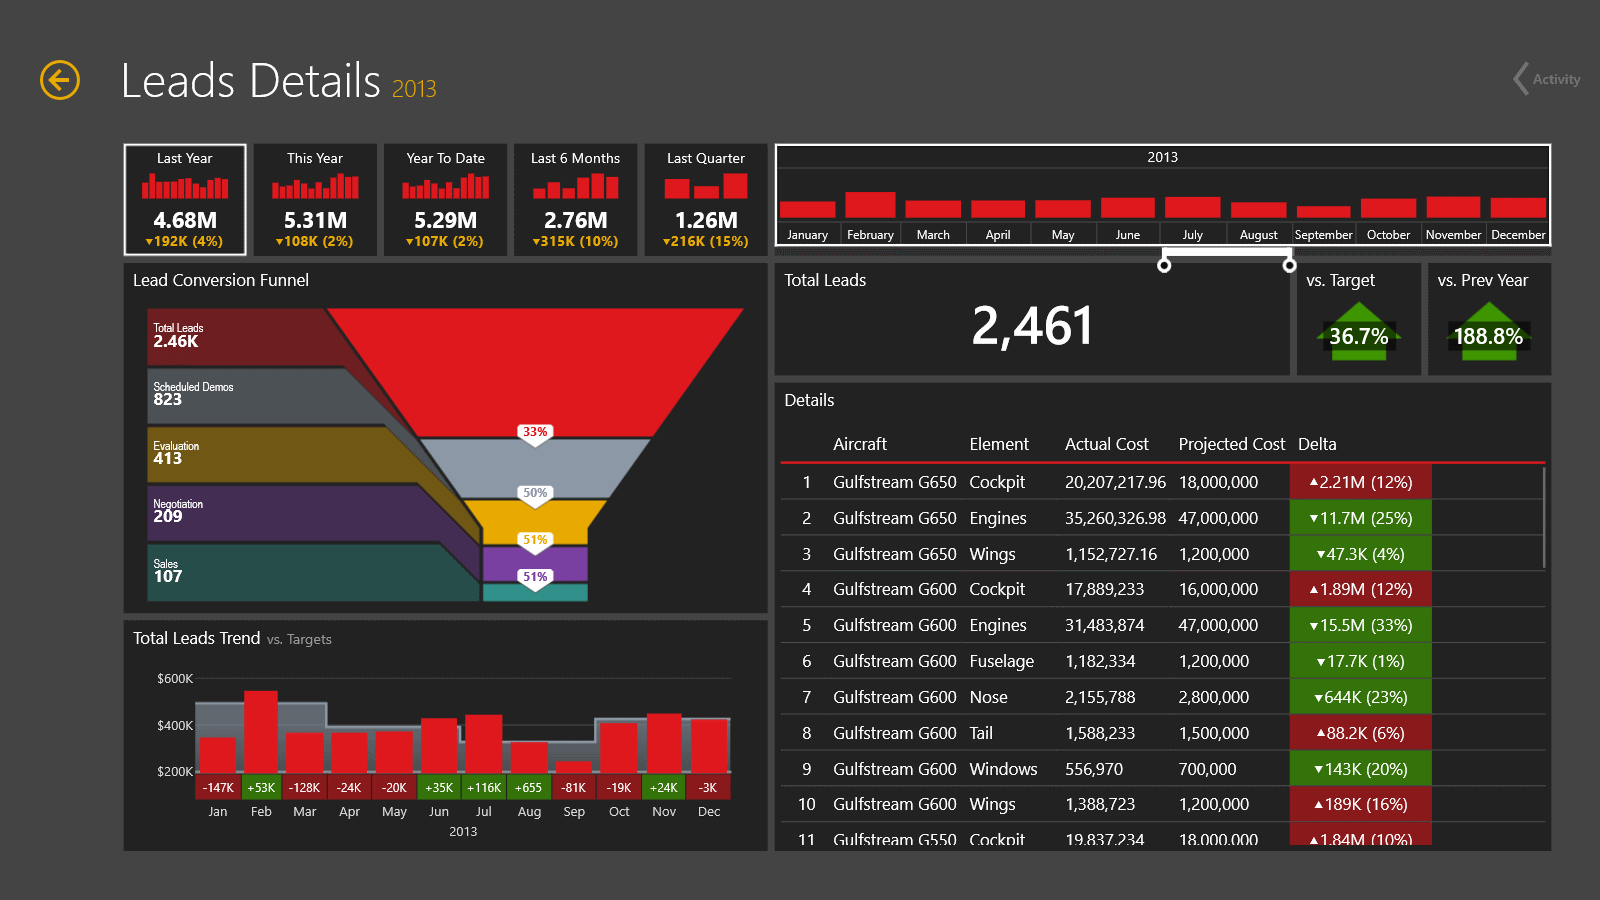 Dashboard: Leads Details